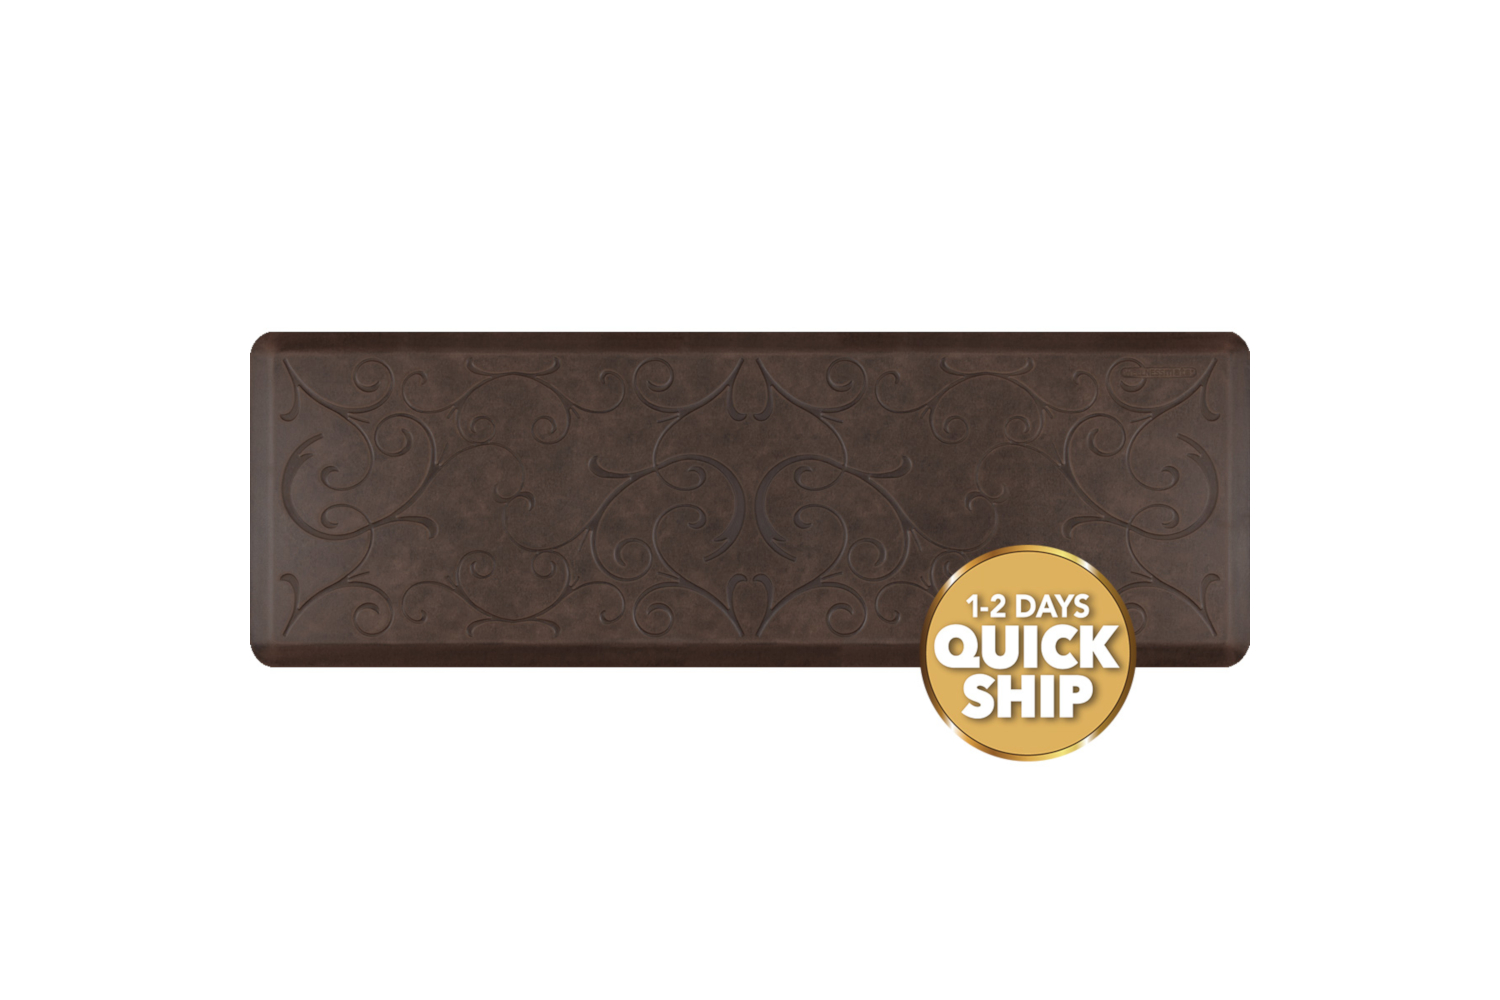 Wellness Anti-Fatigue Kitchen Mat, Bella - 6 x 2 ft. - Antique Dark